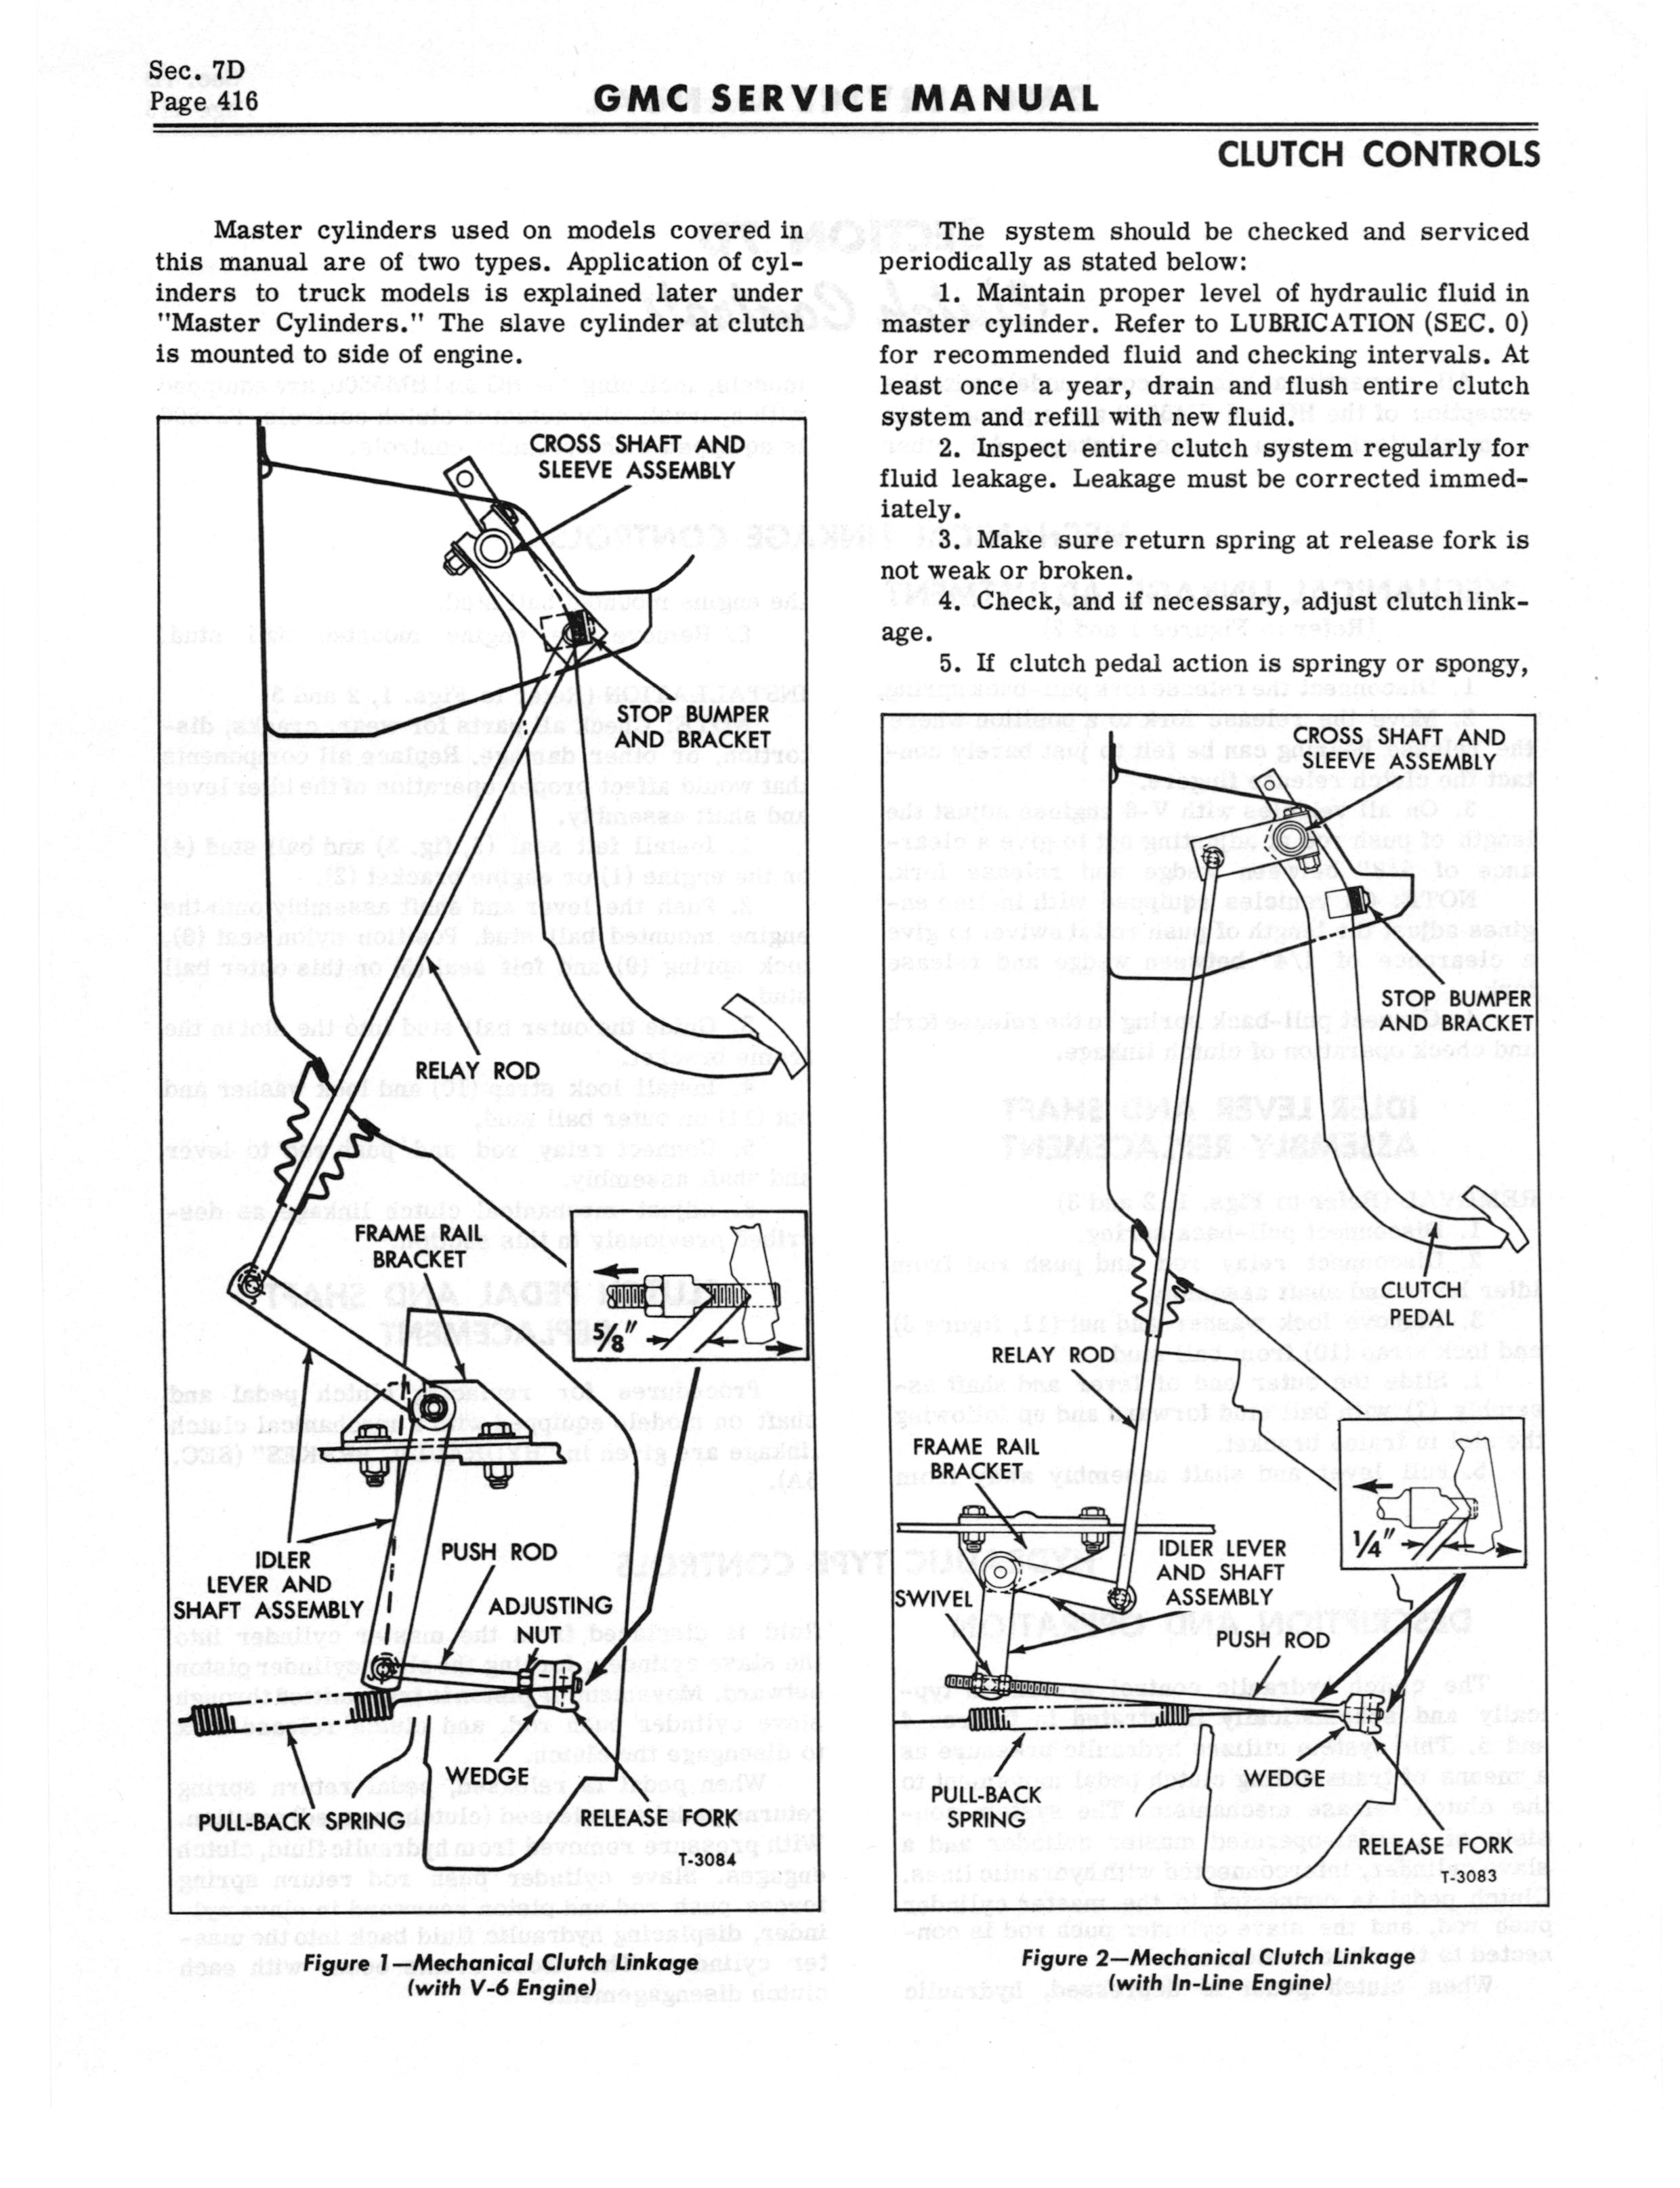 1966 GMC Service Manual Series 4000-6500 page 422 of 506